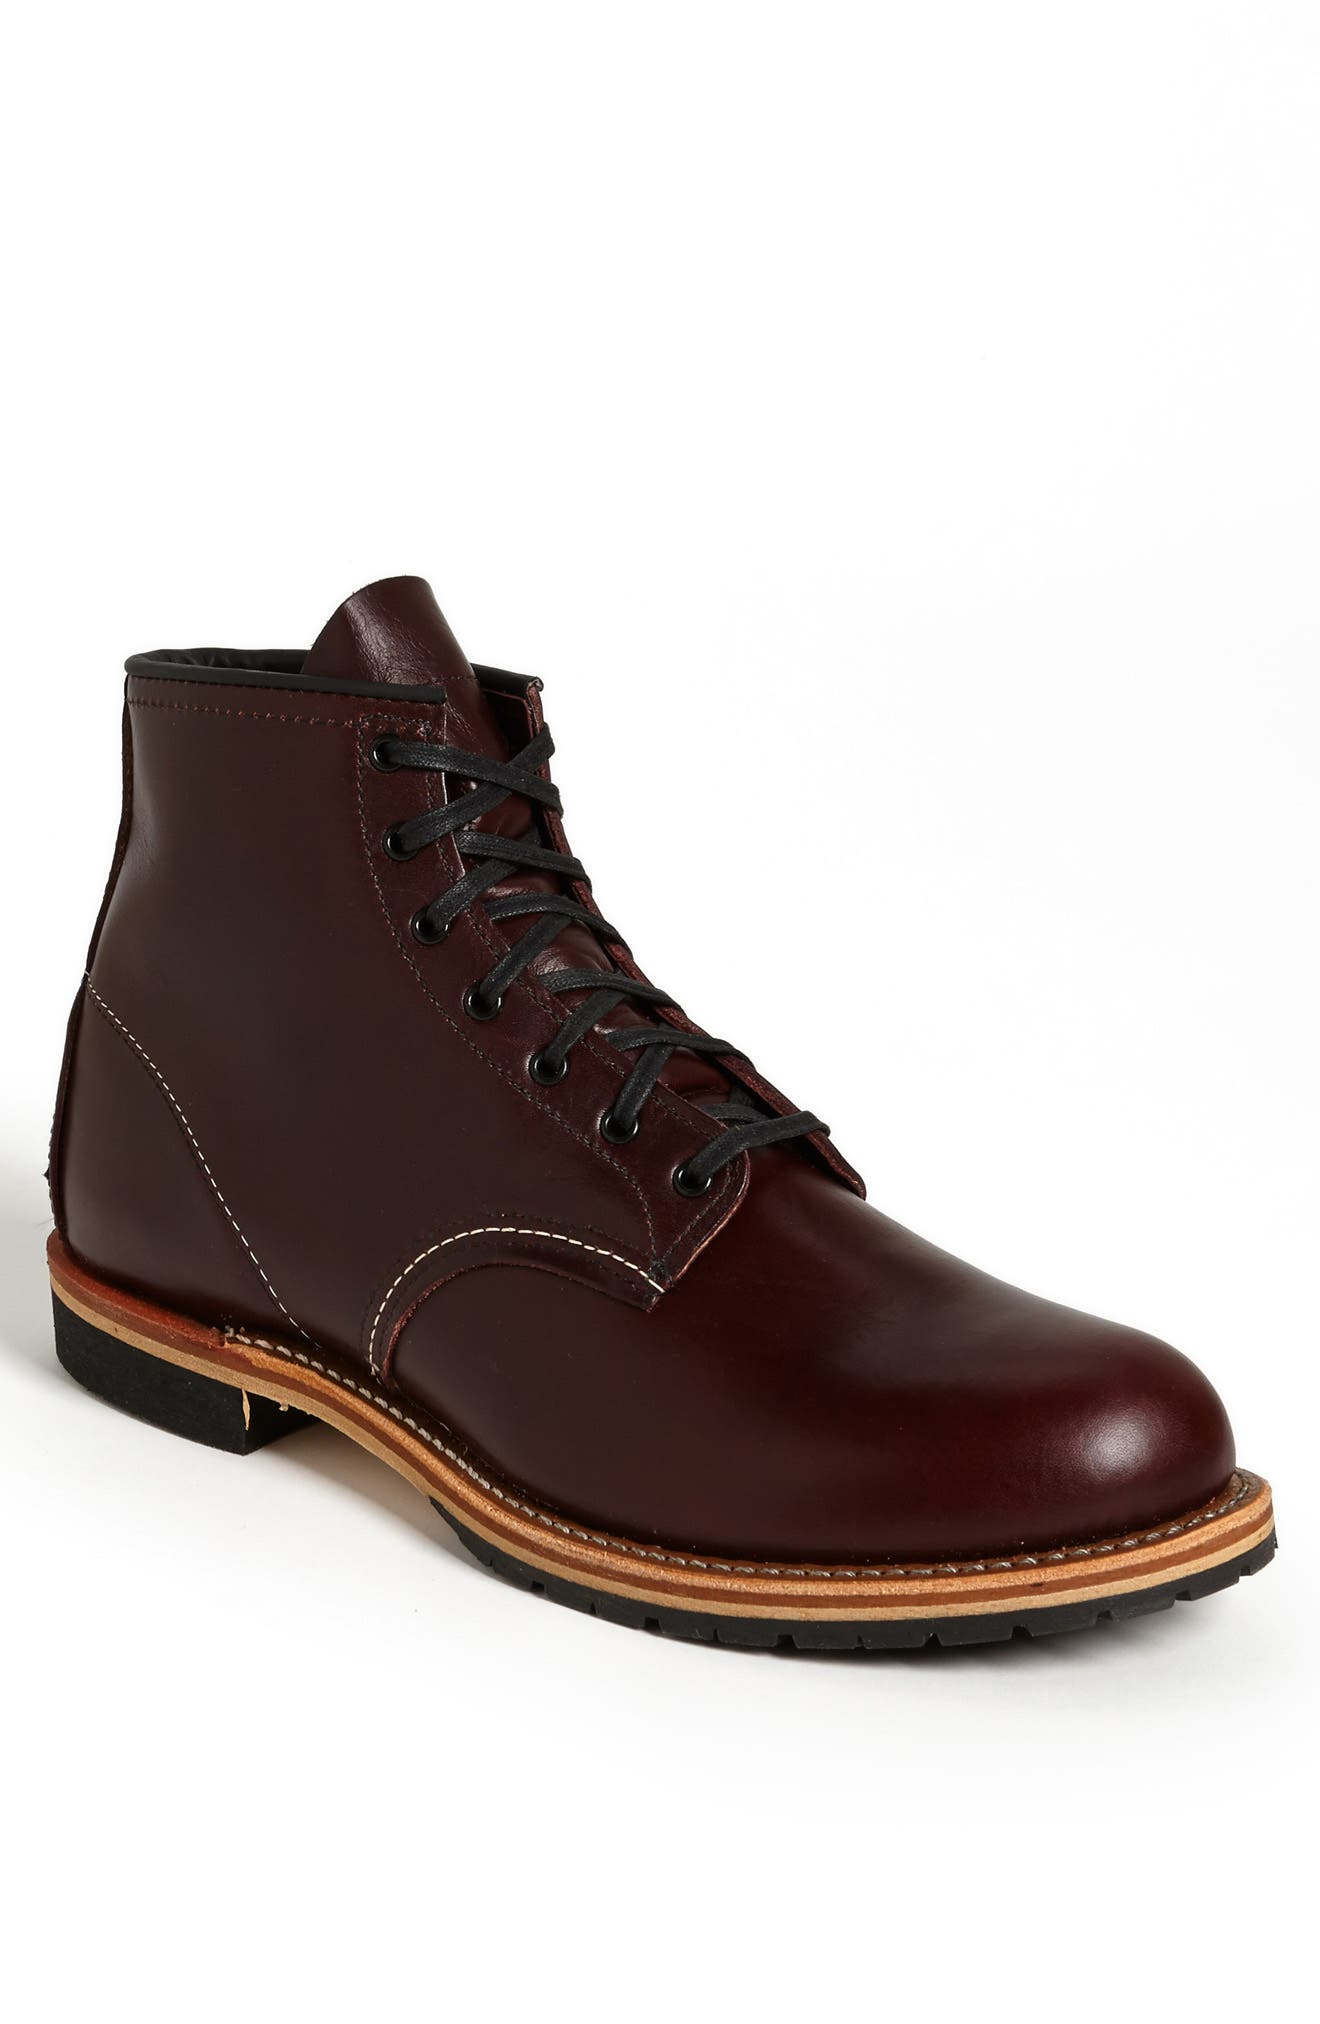 'Beckman' Boot,                             Alternate thumbnail 2, color,                             002